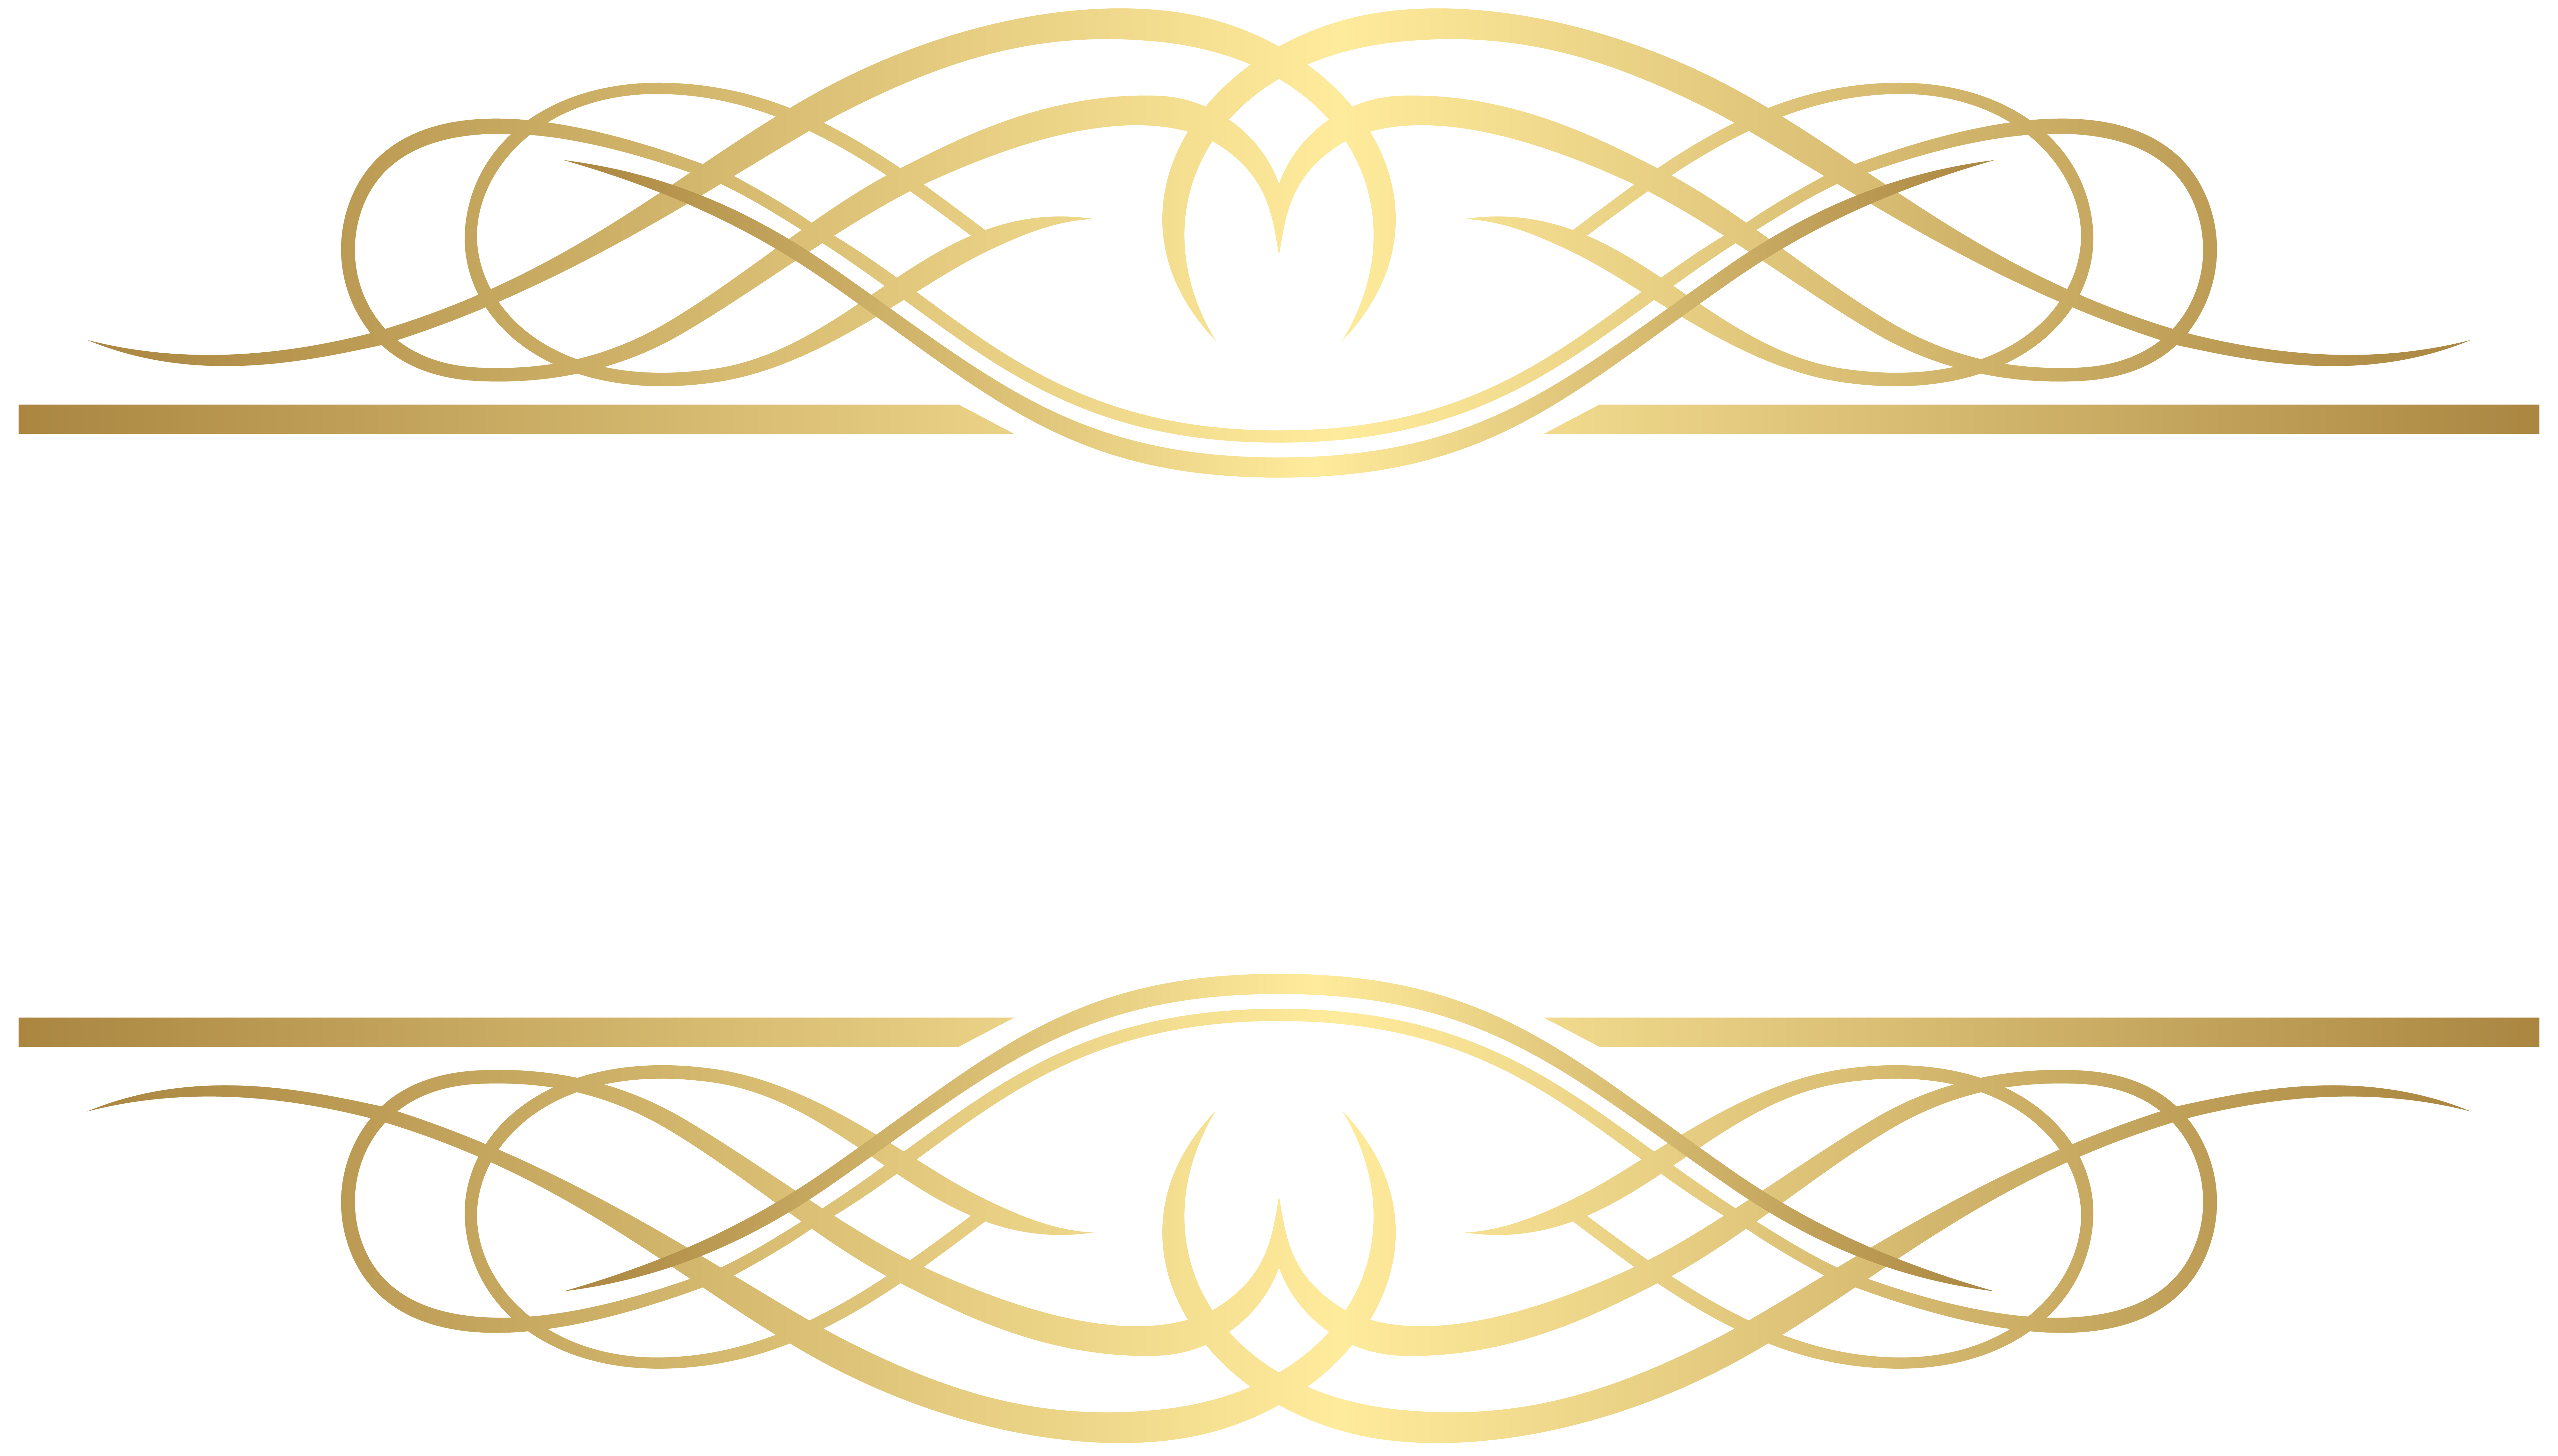 Deco Element Gold Png Clip Art Gallery Yopriceville High Quality Images And Transparent Png Free Clipart Free Clip Art Clip Art Art And Craft Images